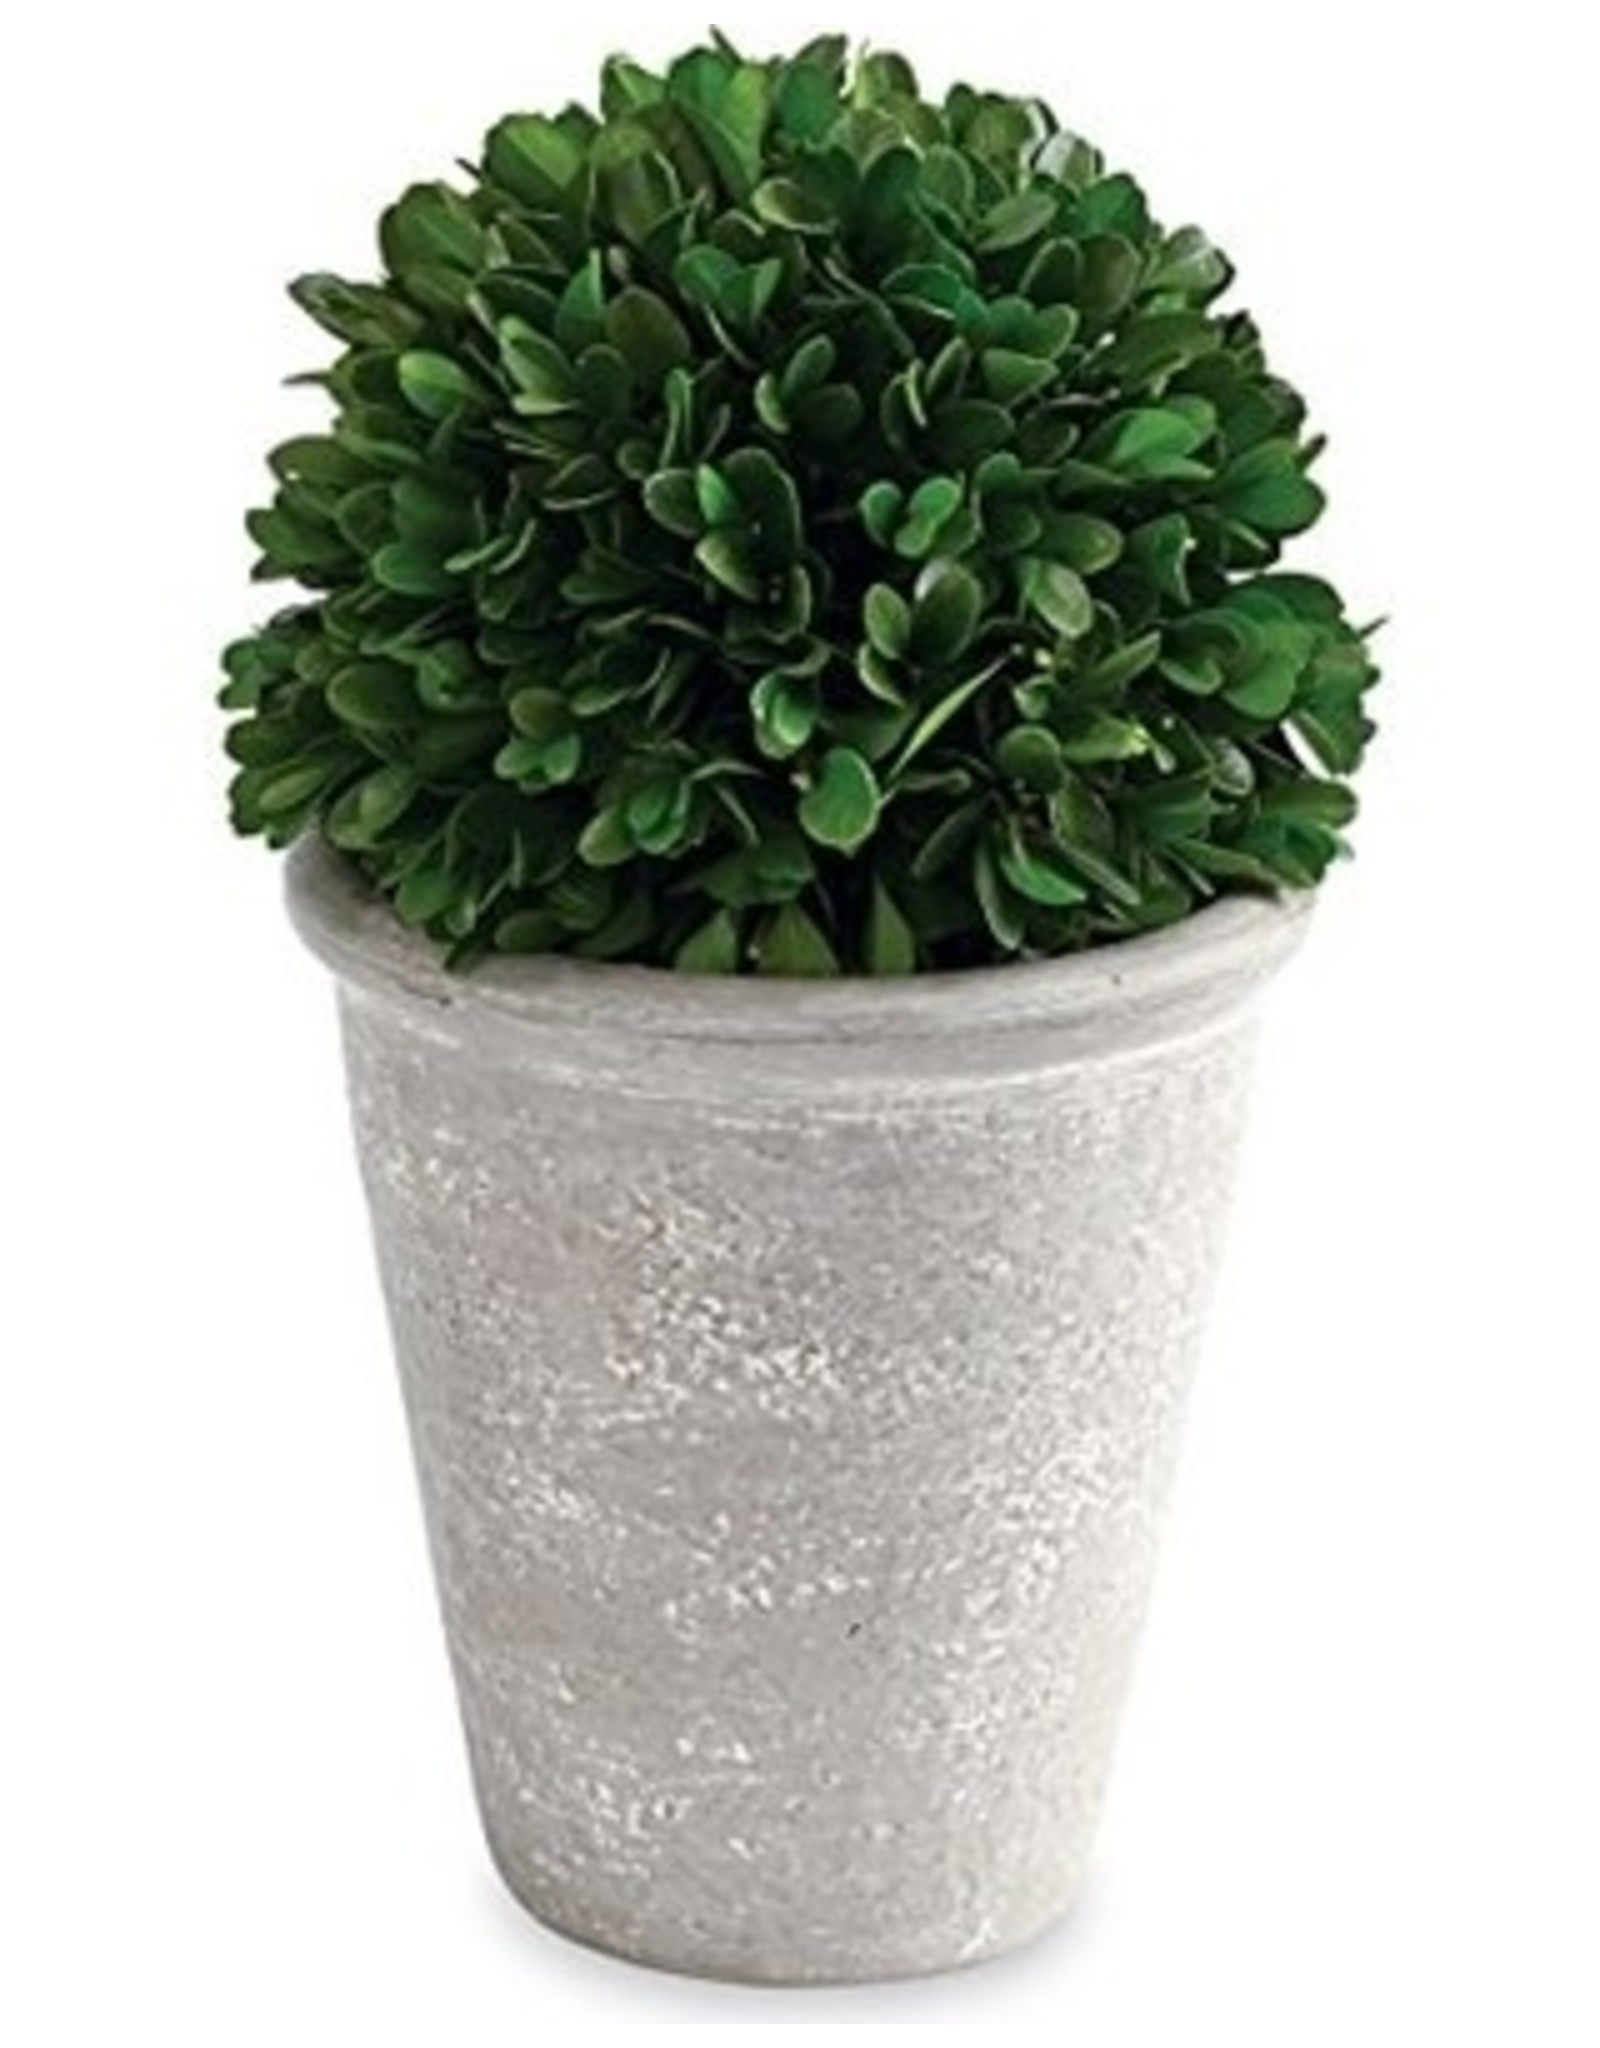 TALL BOXWOOD BALL IN POT